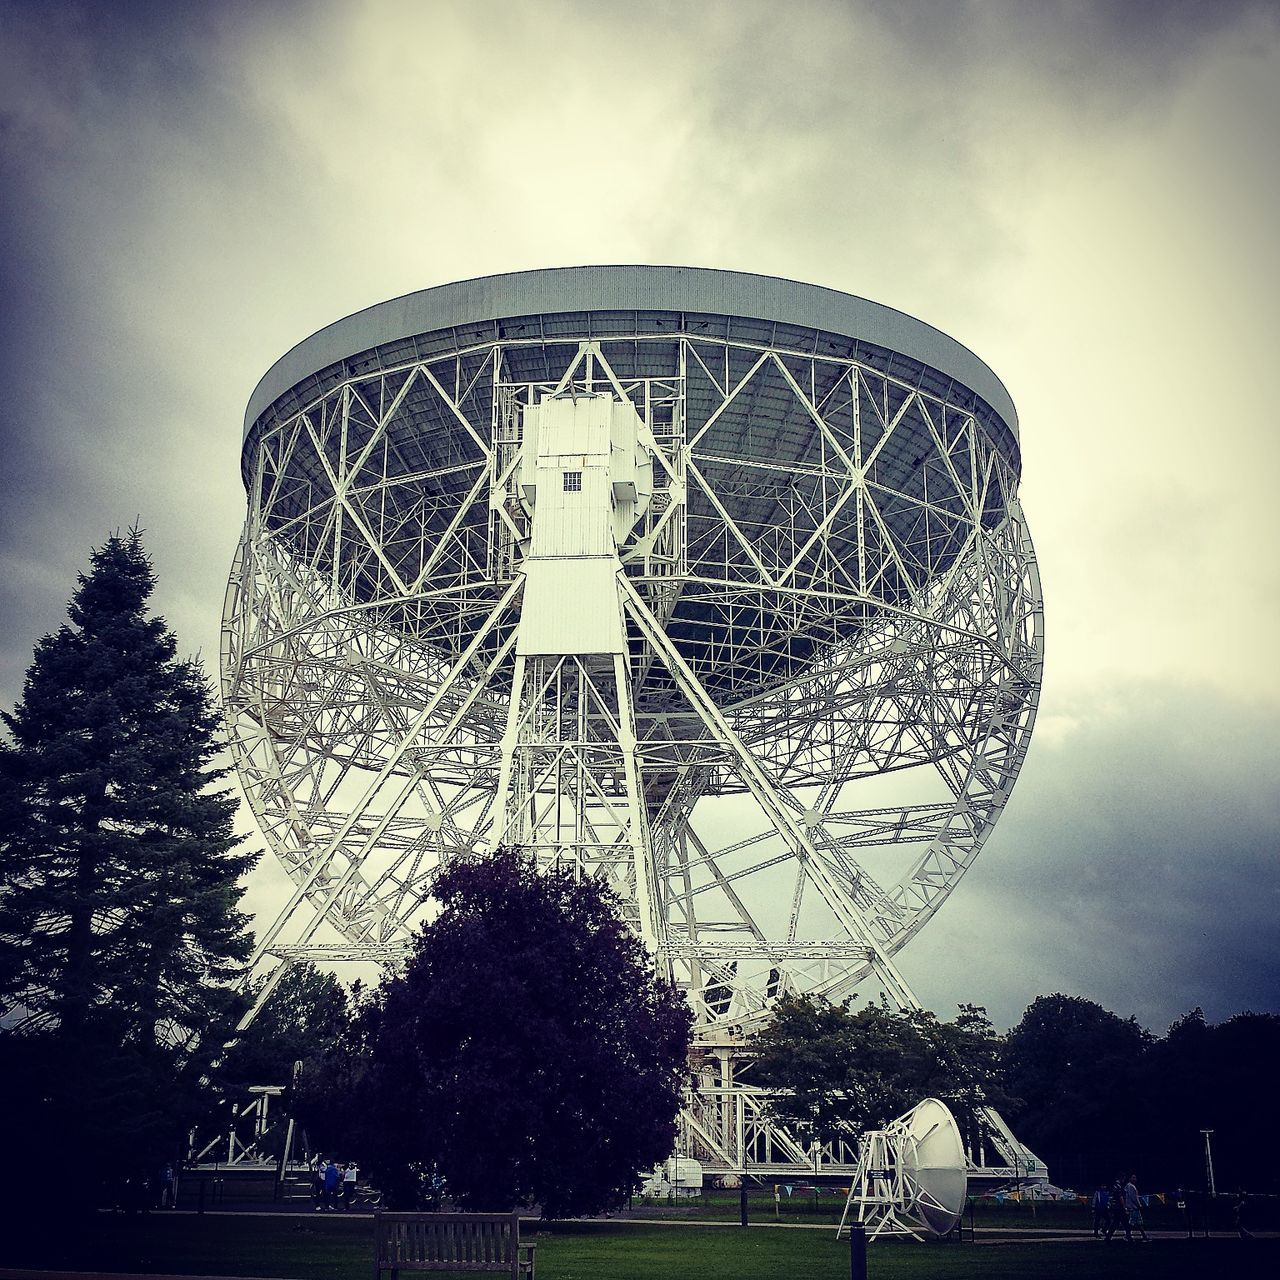 Jodrell Bank Observatory. Astronical radio telescope Astronomical Observations Astronomical Observatory Astronomical Telescope Astronomy International Landmark Jodrell Bank Jodrell Bank Observatory Low Angle View Observatory Radio Radio Telescope Radiography Test Satellite Dish Technology Telescope